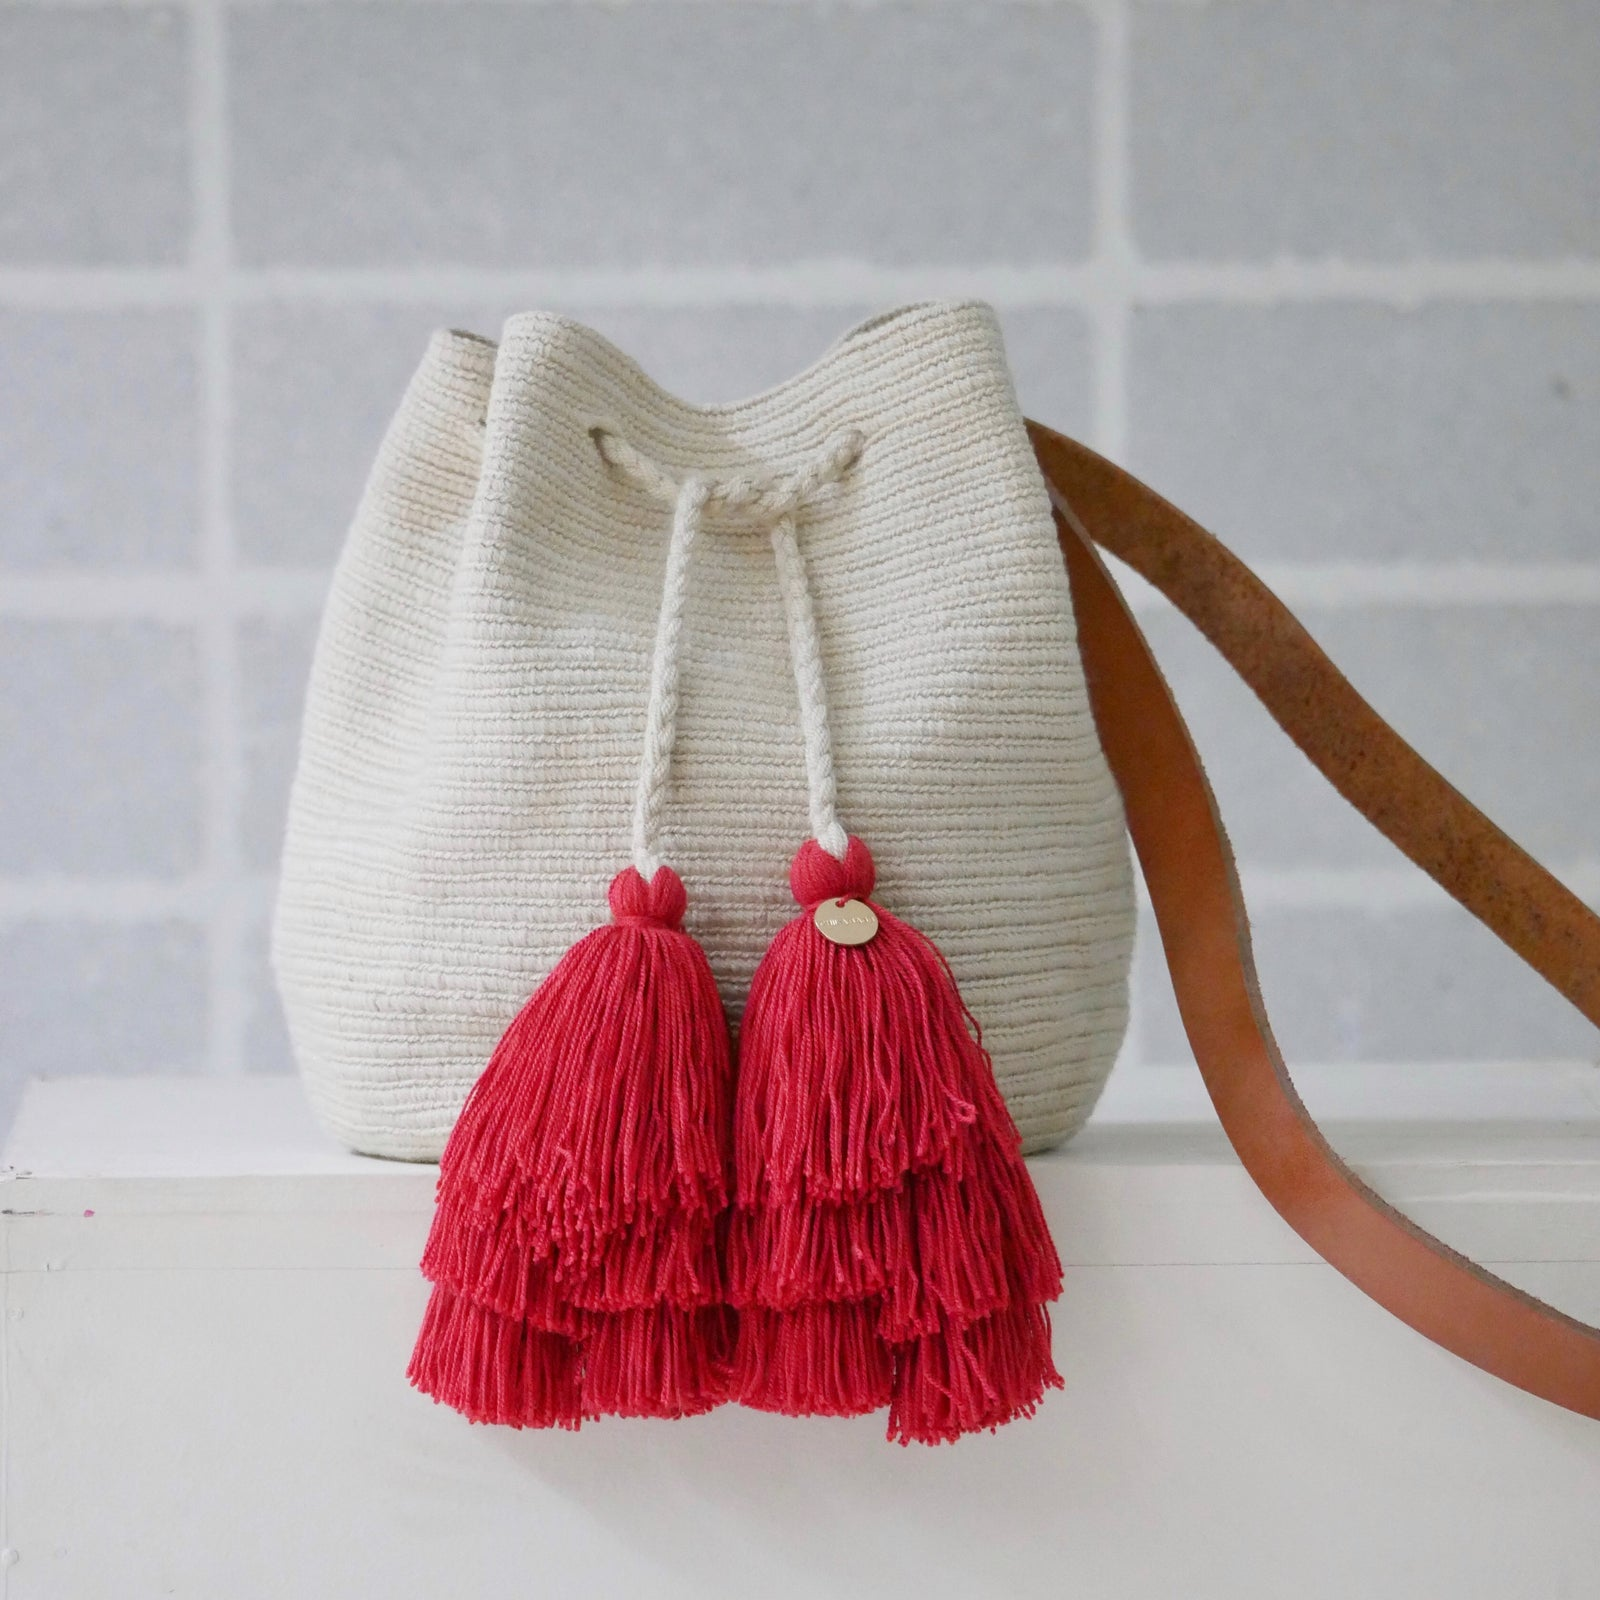 Cream Bag with Leather Strap